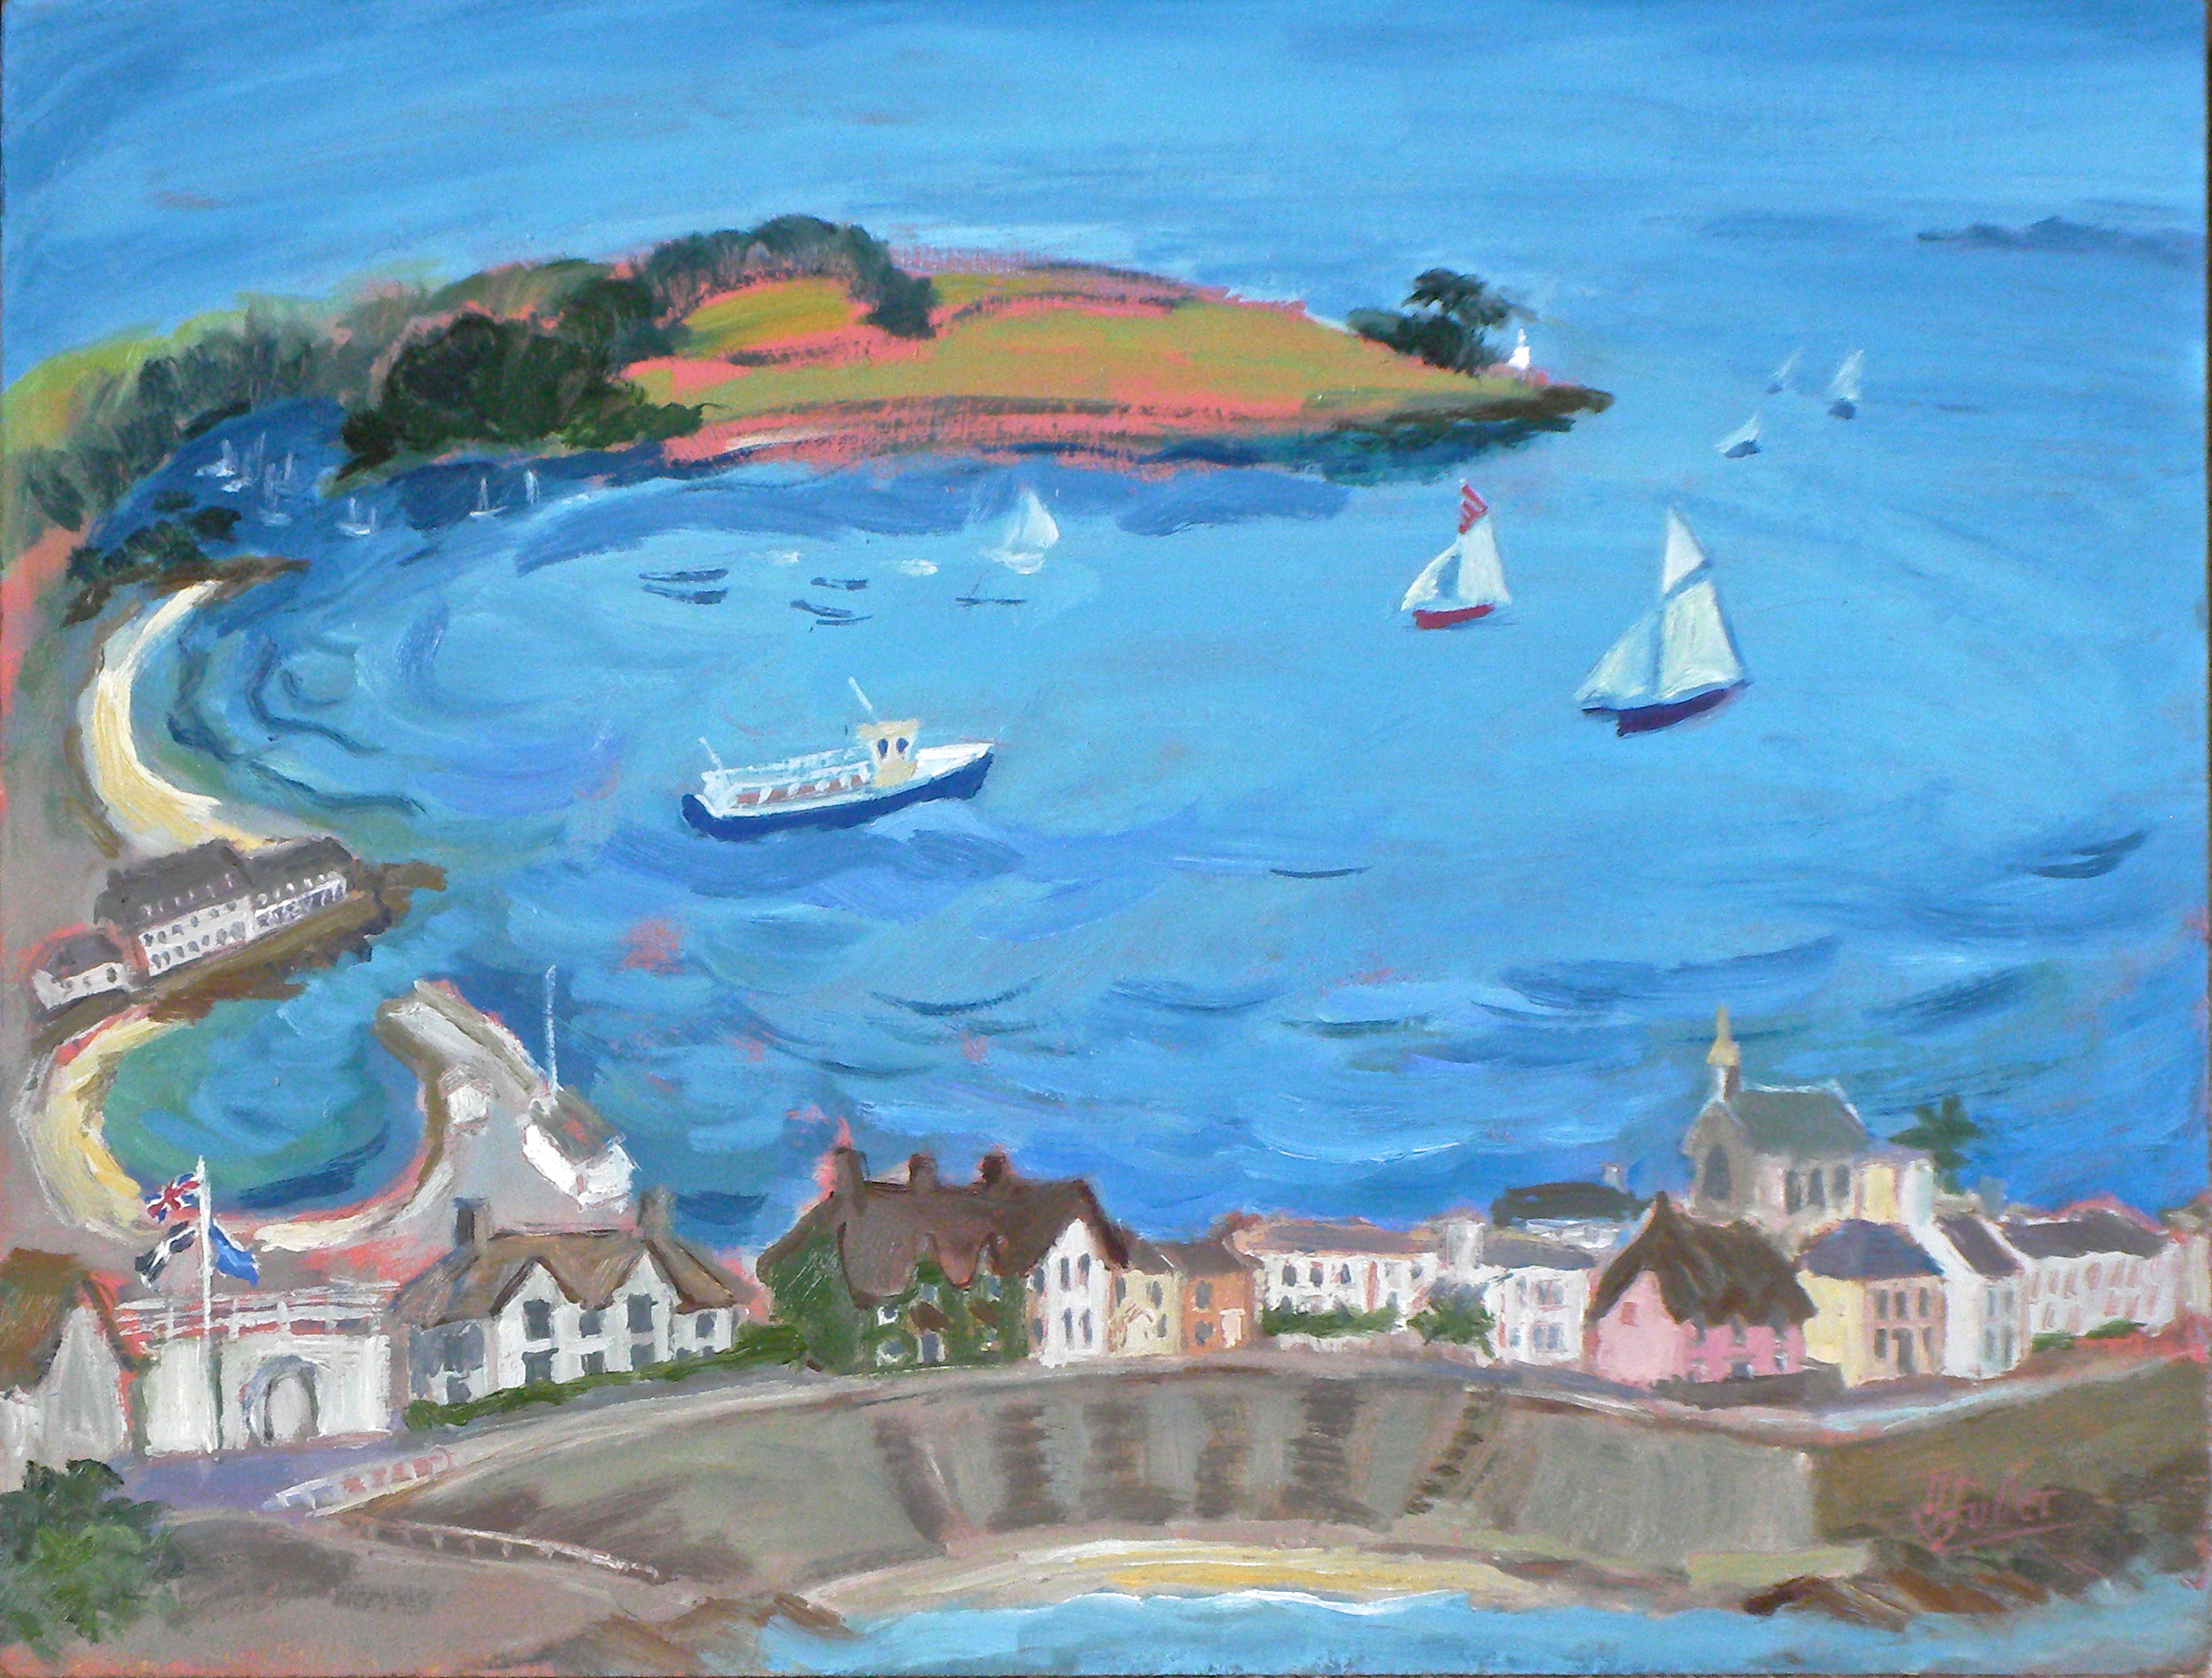 745 A vision of St Mawes